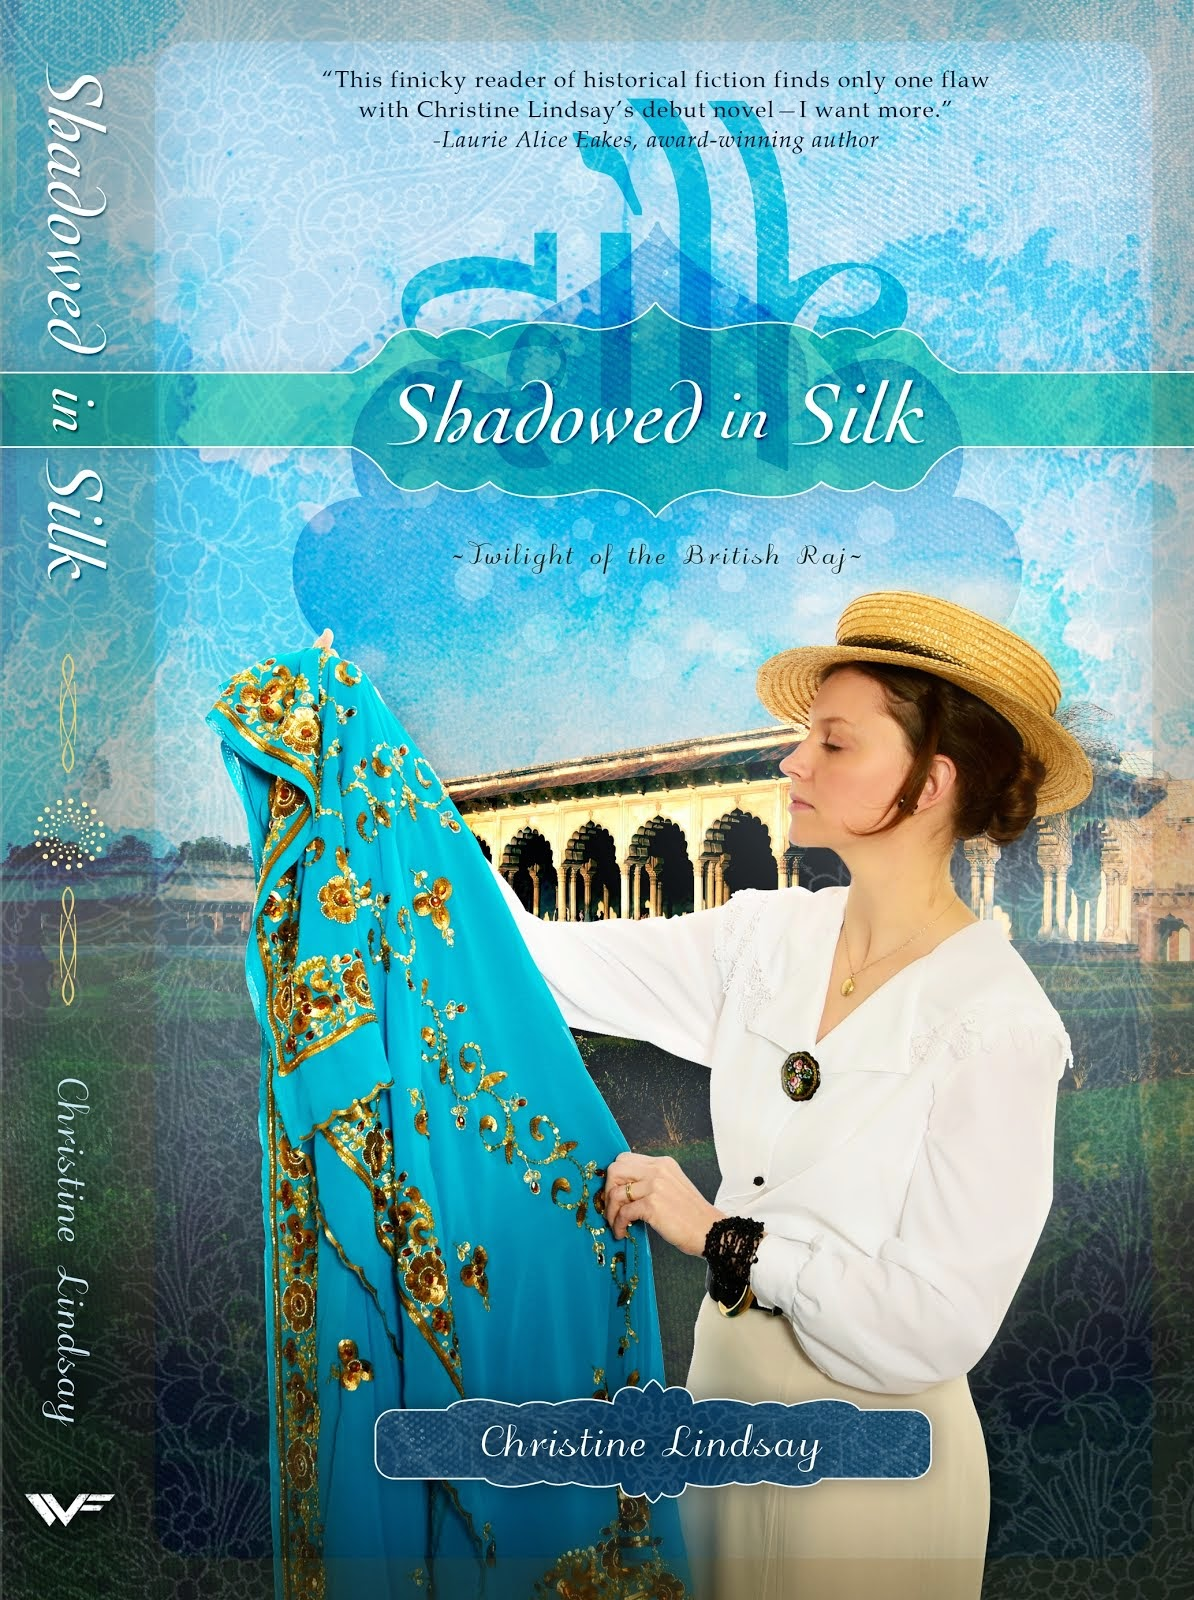 SHADOWED IN SILK, Book 1 of series Twilight of the British Raj